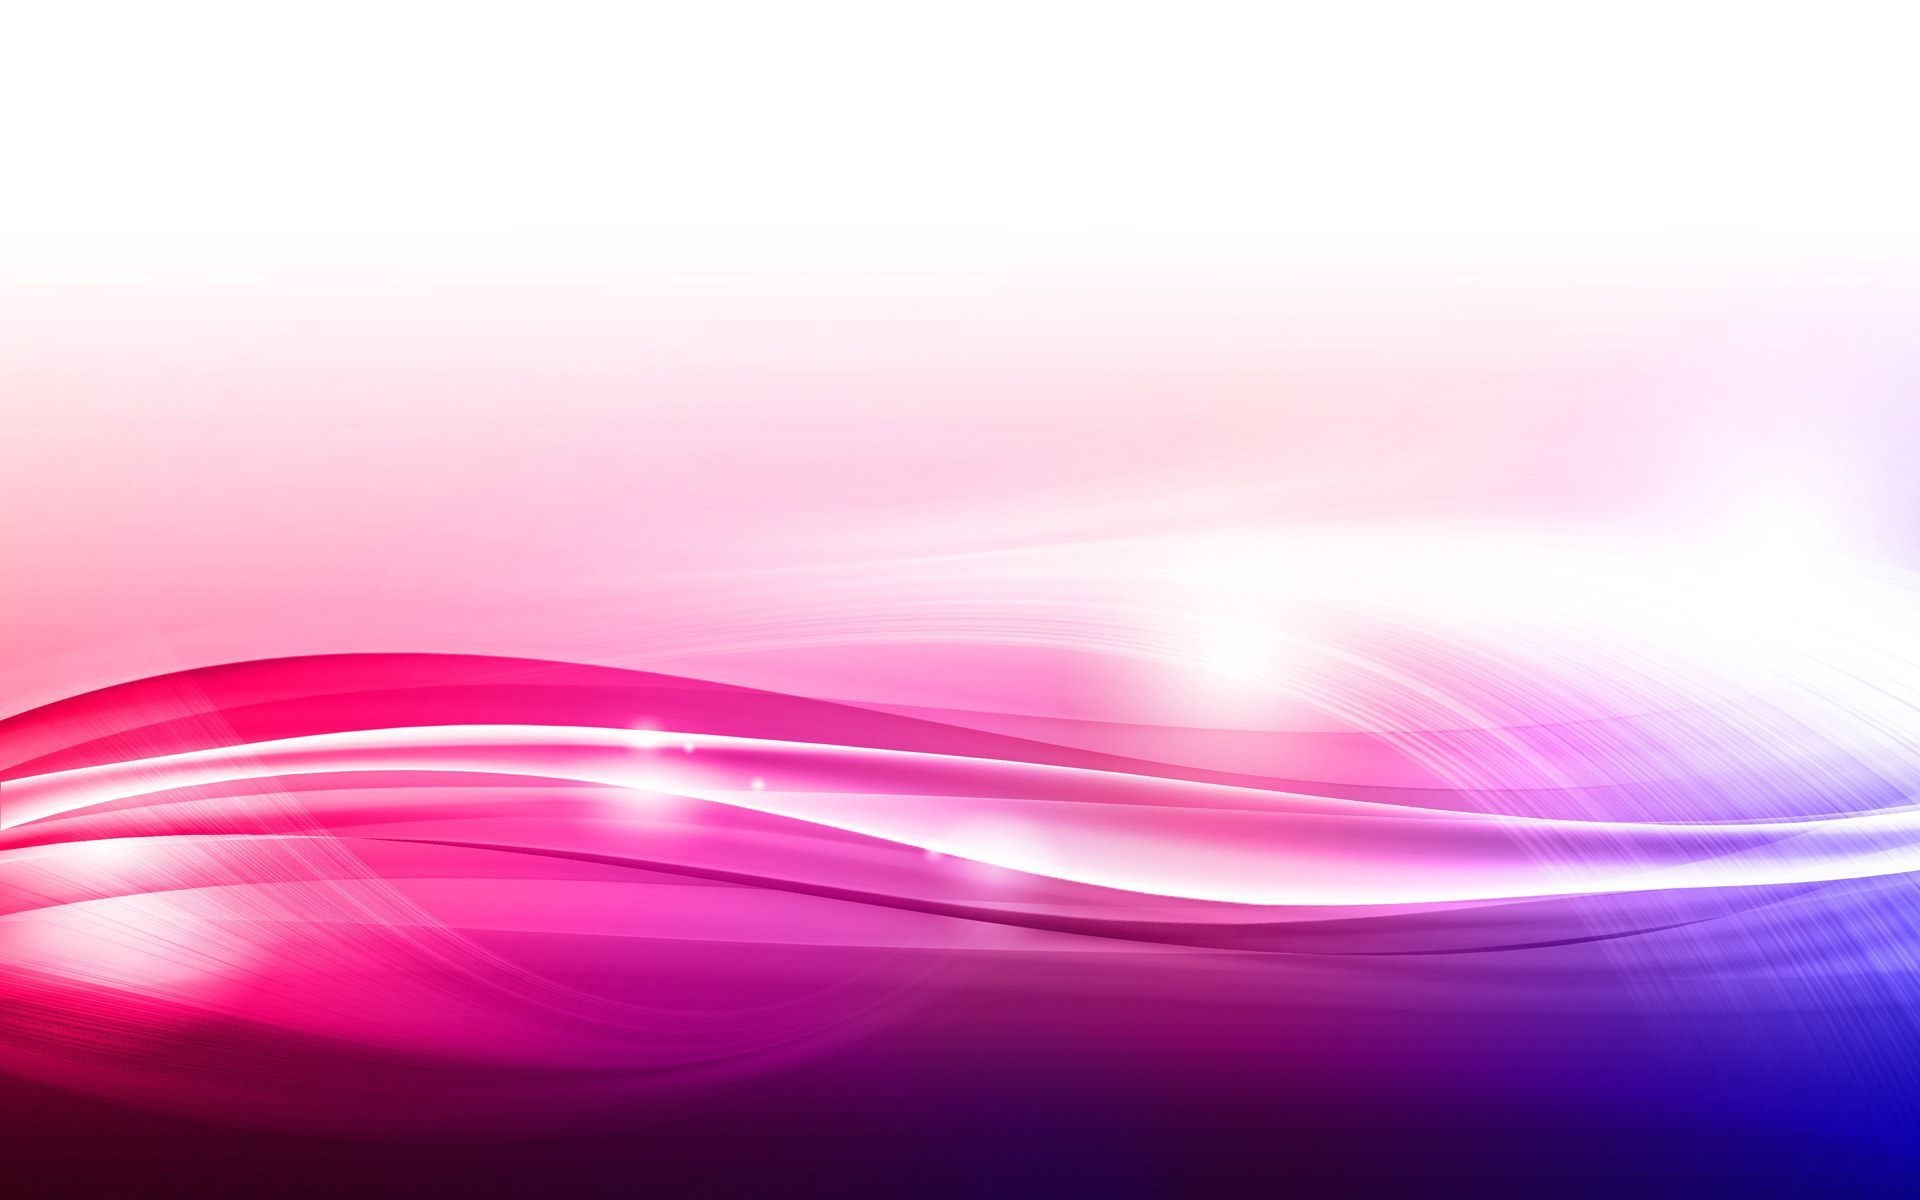 1920x1200 Pink Blue Abstract background Image Wallpaper